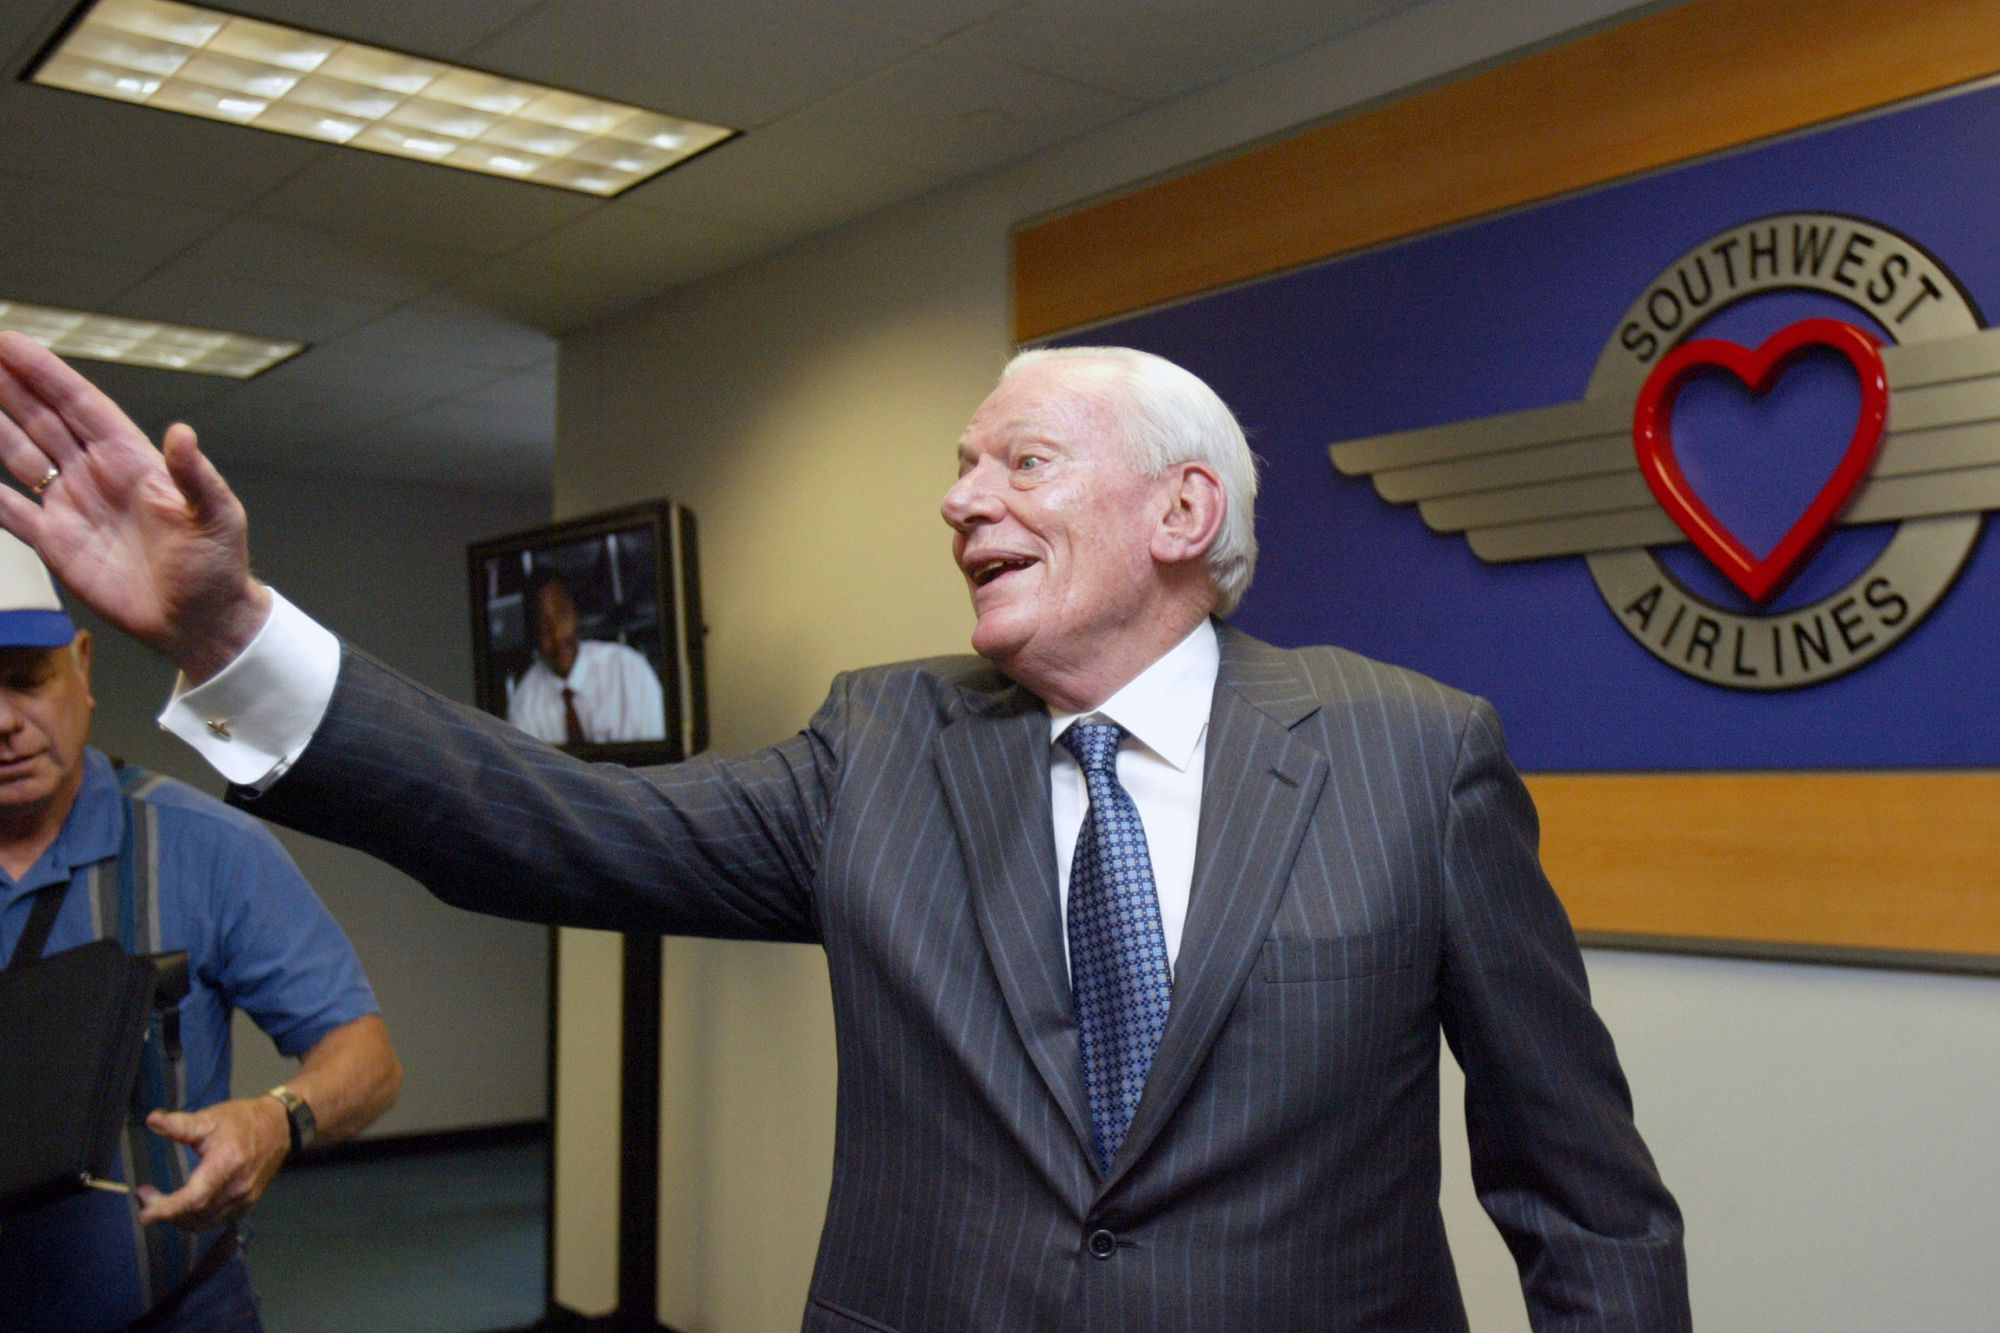 Perseverance: Why It Was Southwest Airlines' Herb Kelleher's Most Important Lesson for Entrepreneurs